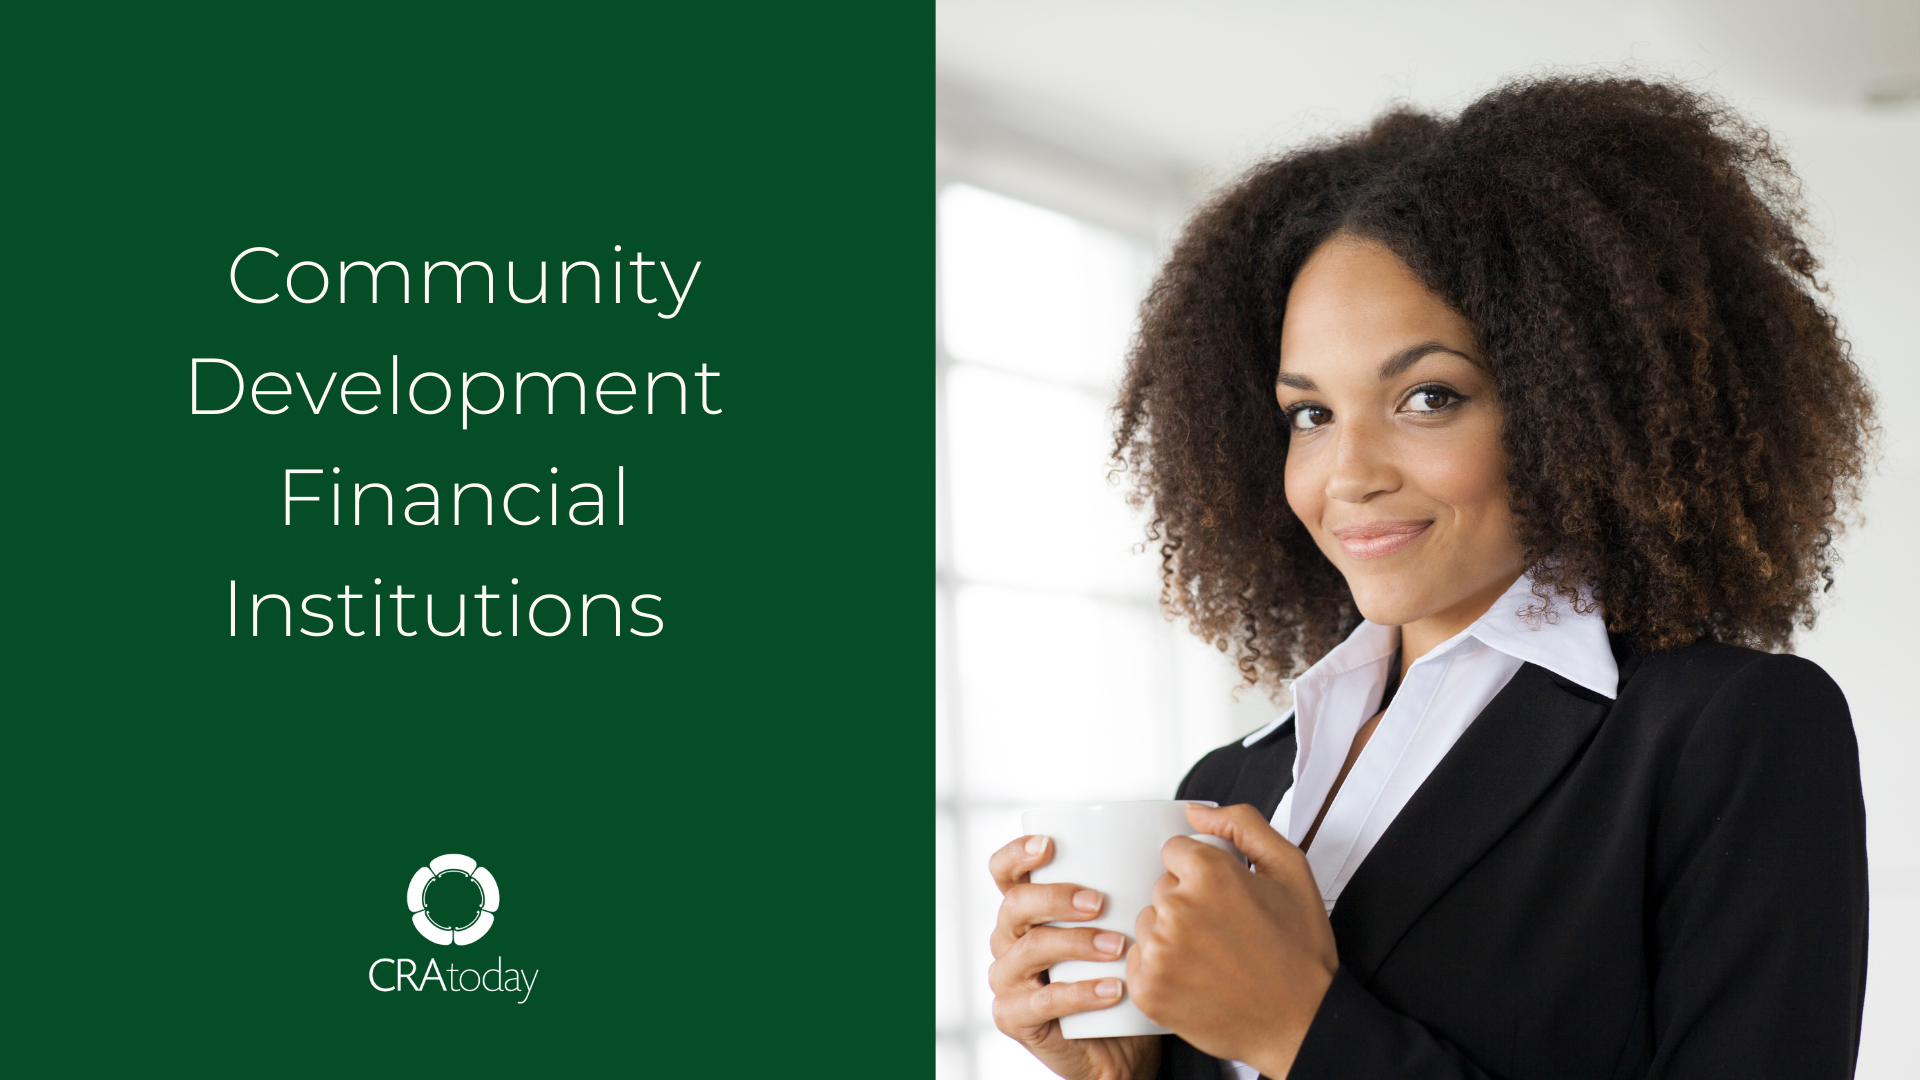 Spotlight on CDFIs - Your Partners in Community Developemnt